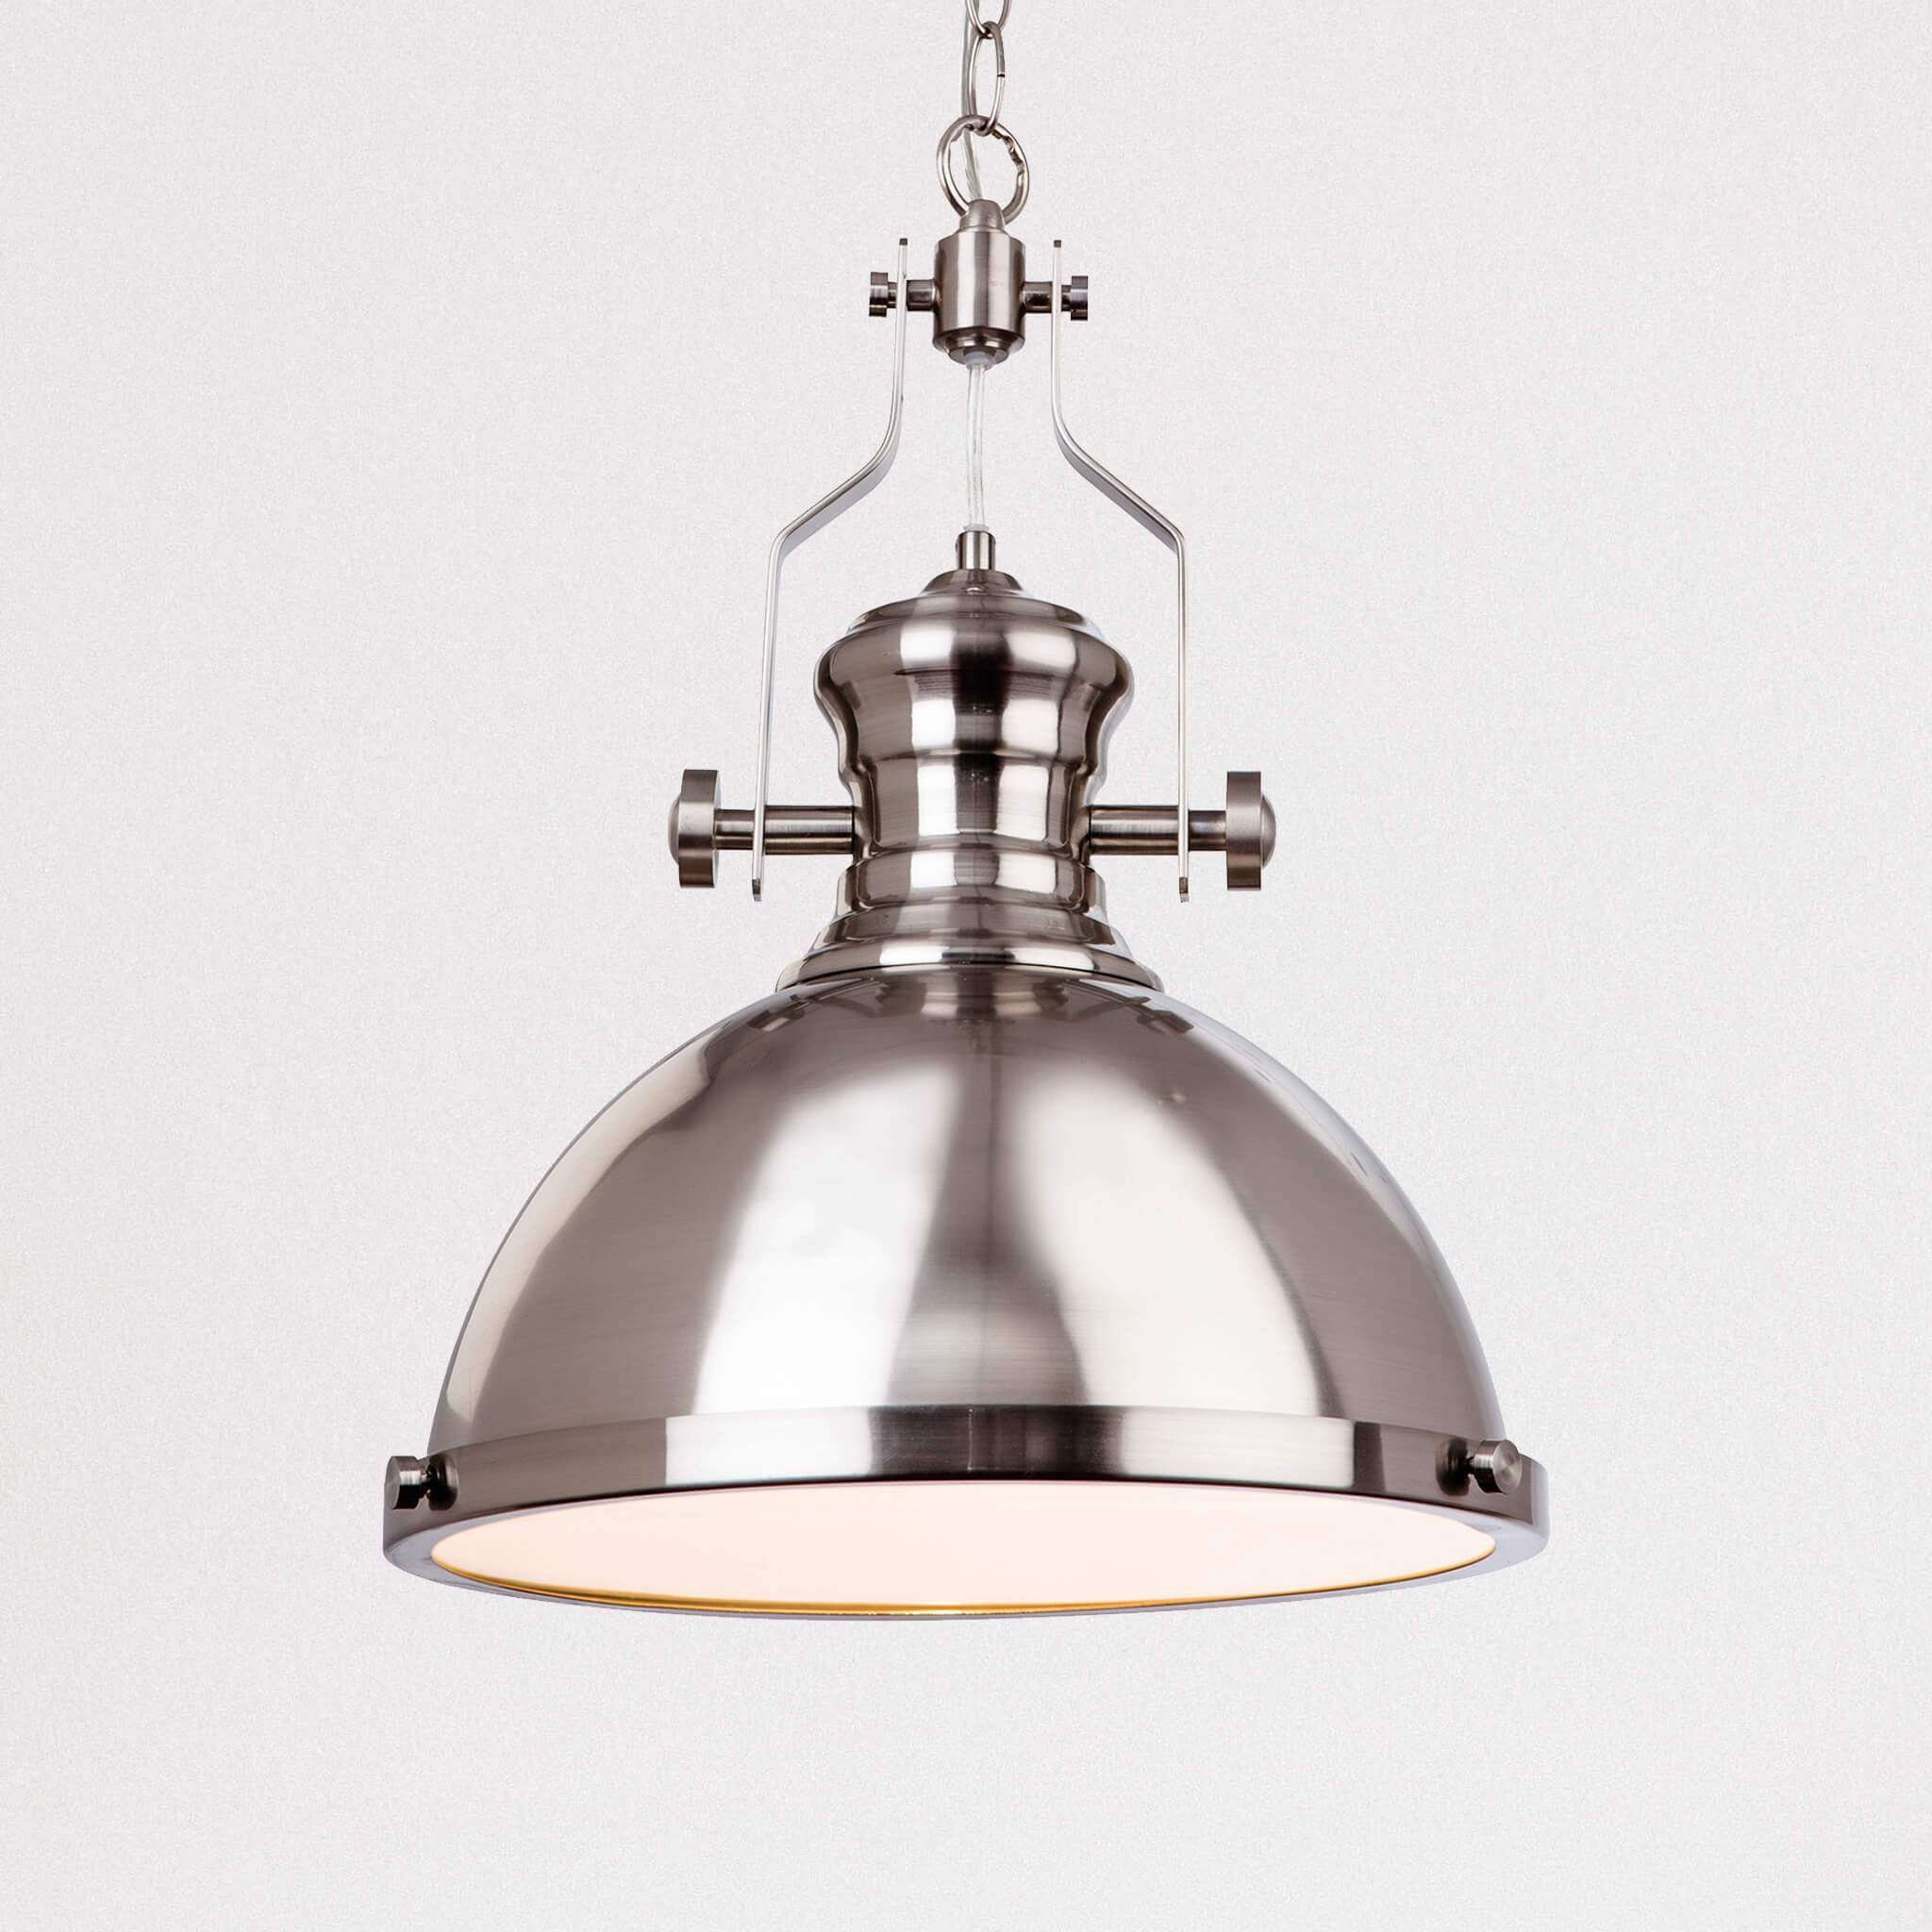 Firstlight albion brushed steel industrial pendant 5909bs 2048x 8e067c71 1507 4fdb bdbb 2b678c9a52f0 2048x jpgv1547205574